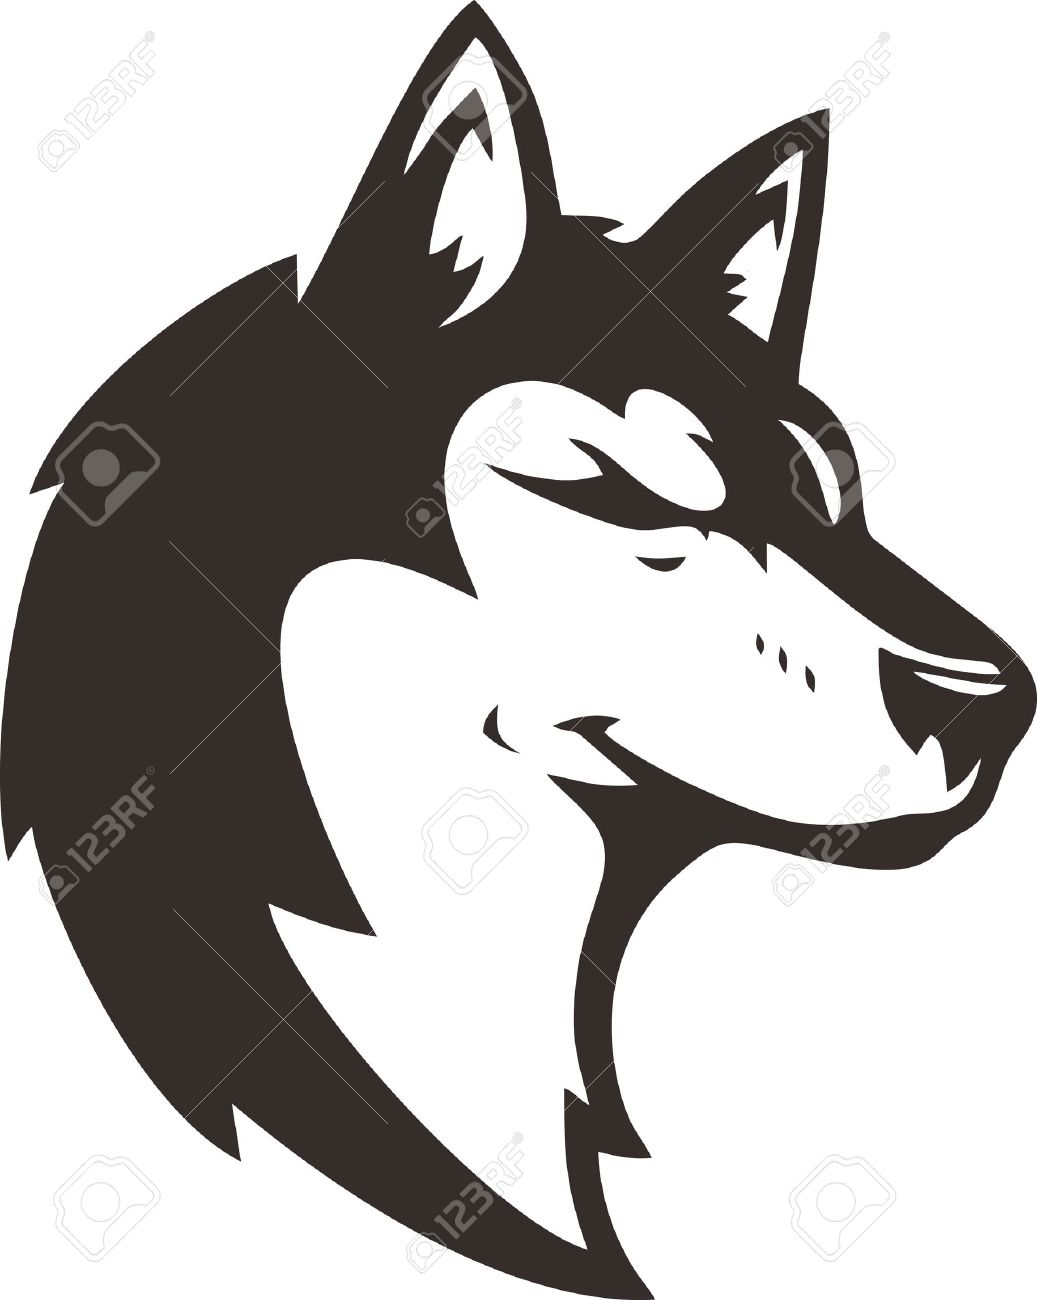 Wolf Head Silhouette Royalty Free Cliparts, Vectors, And Stock